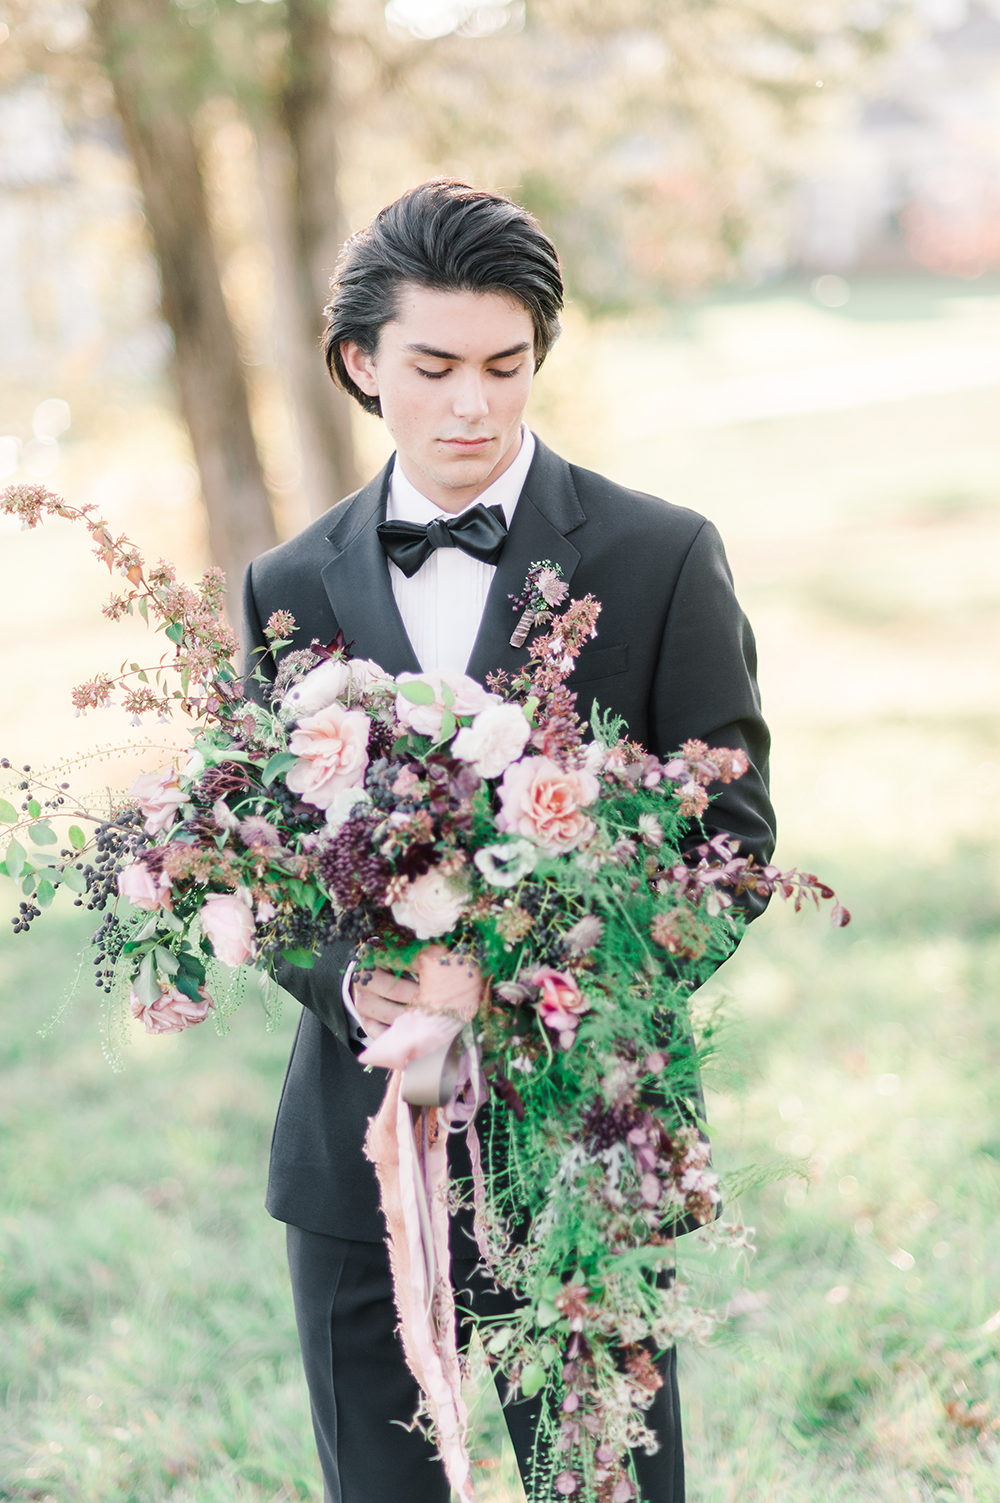 groom with bouquets - photo by Jenny B Photos http://ruffledblog.com/ethereal-wedding-inspiration-with-vintage-accents